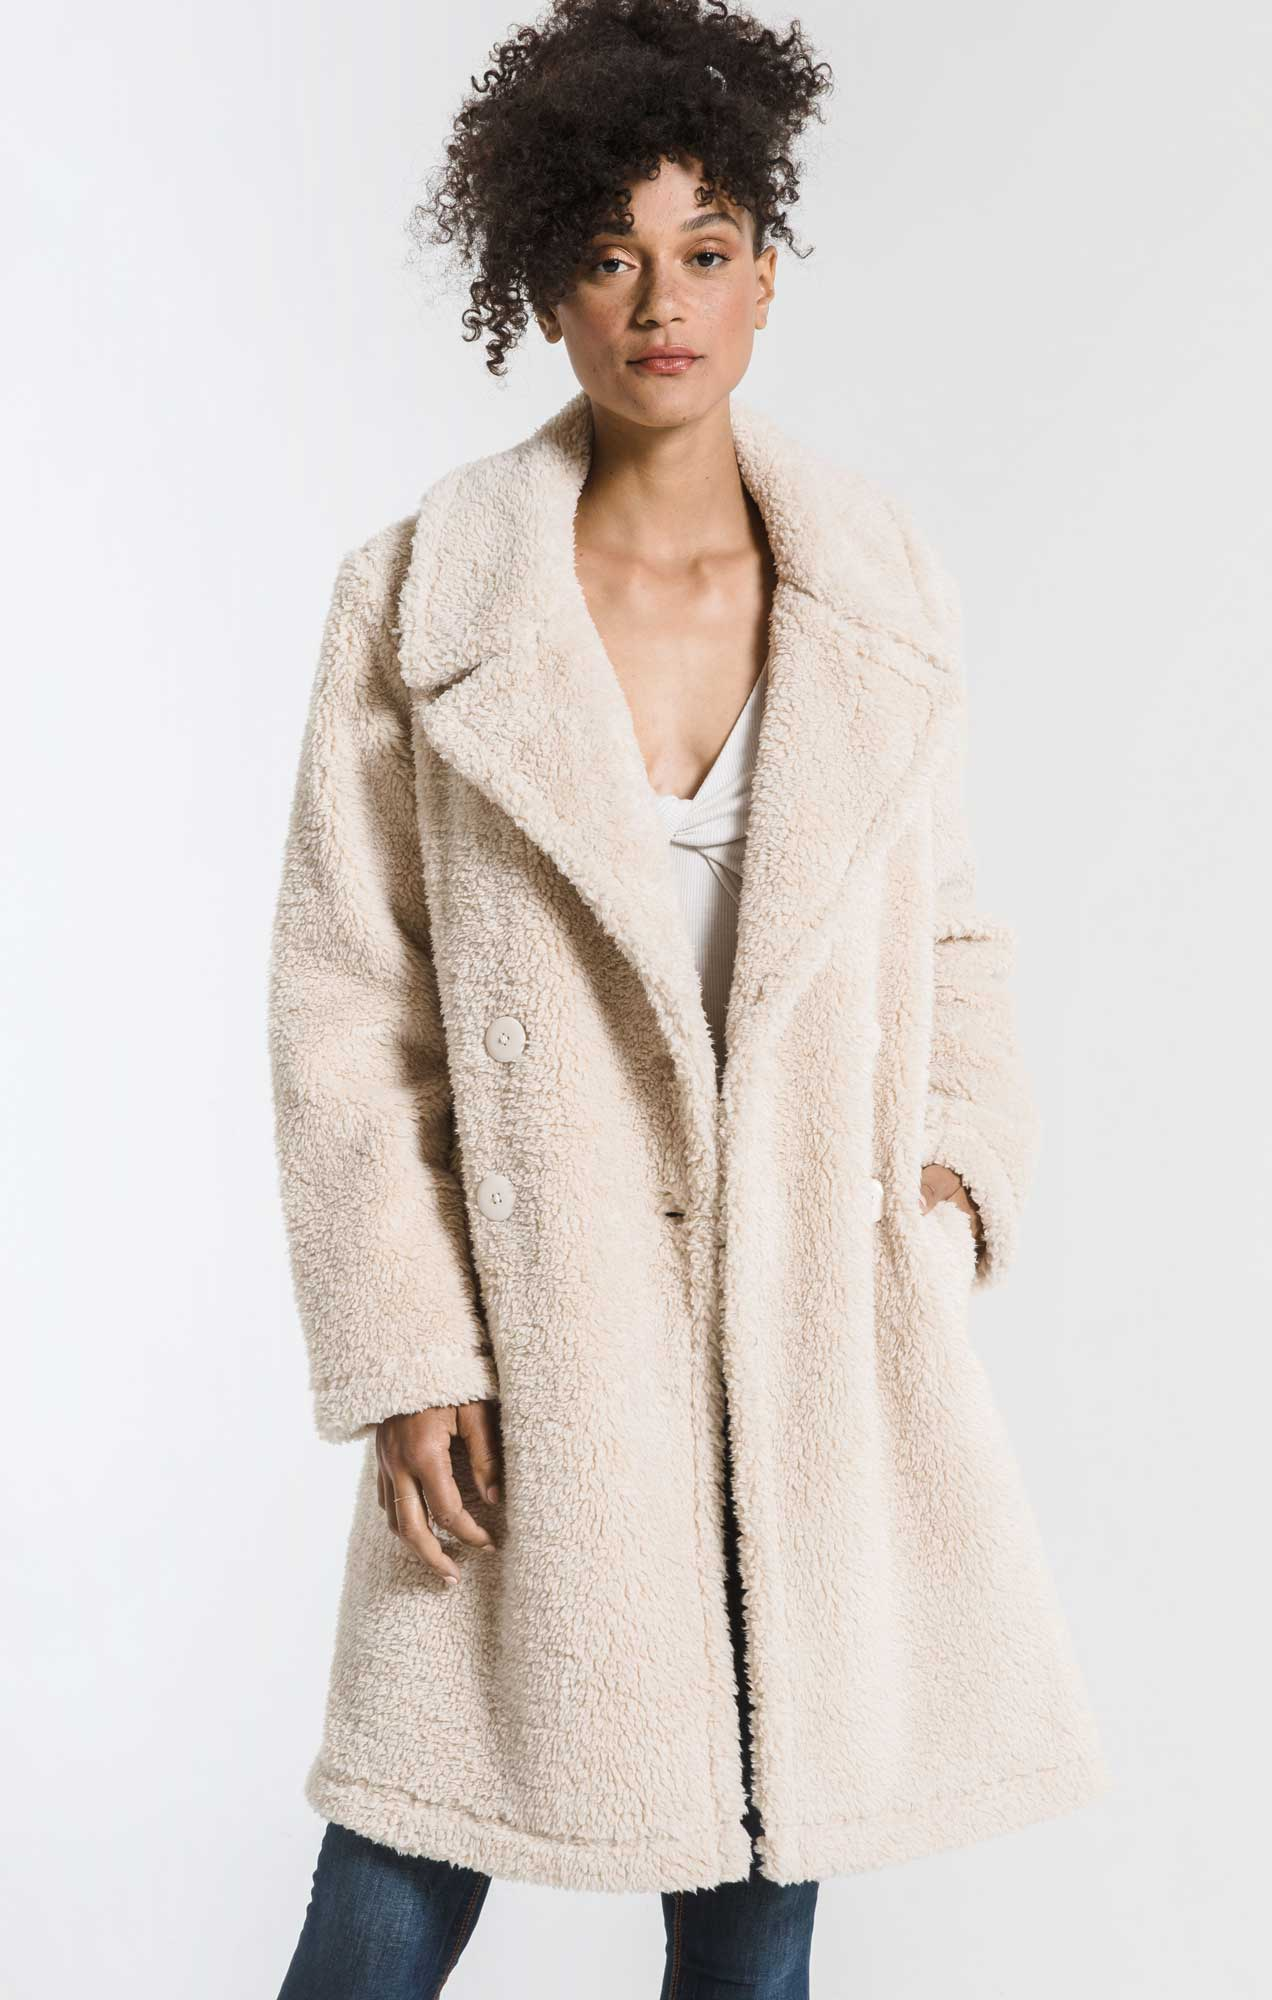 Coats Cozy Sherpa Coat Pearl